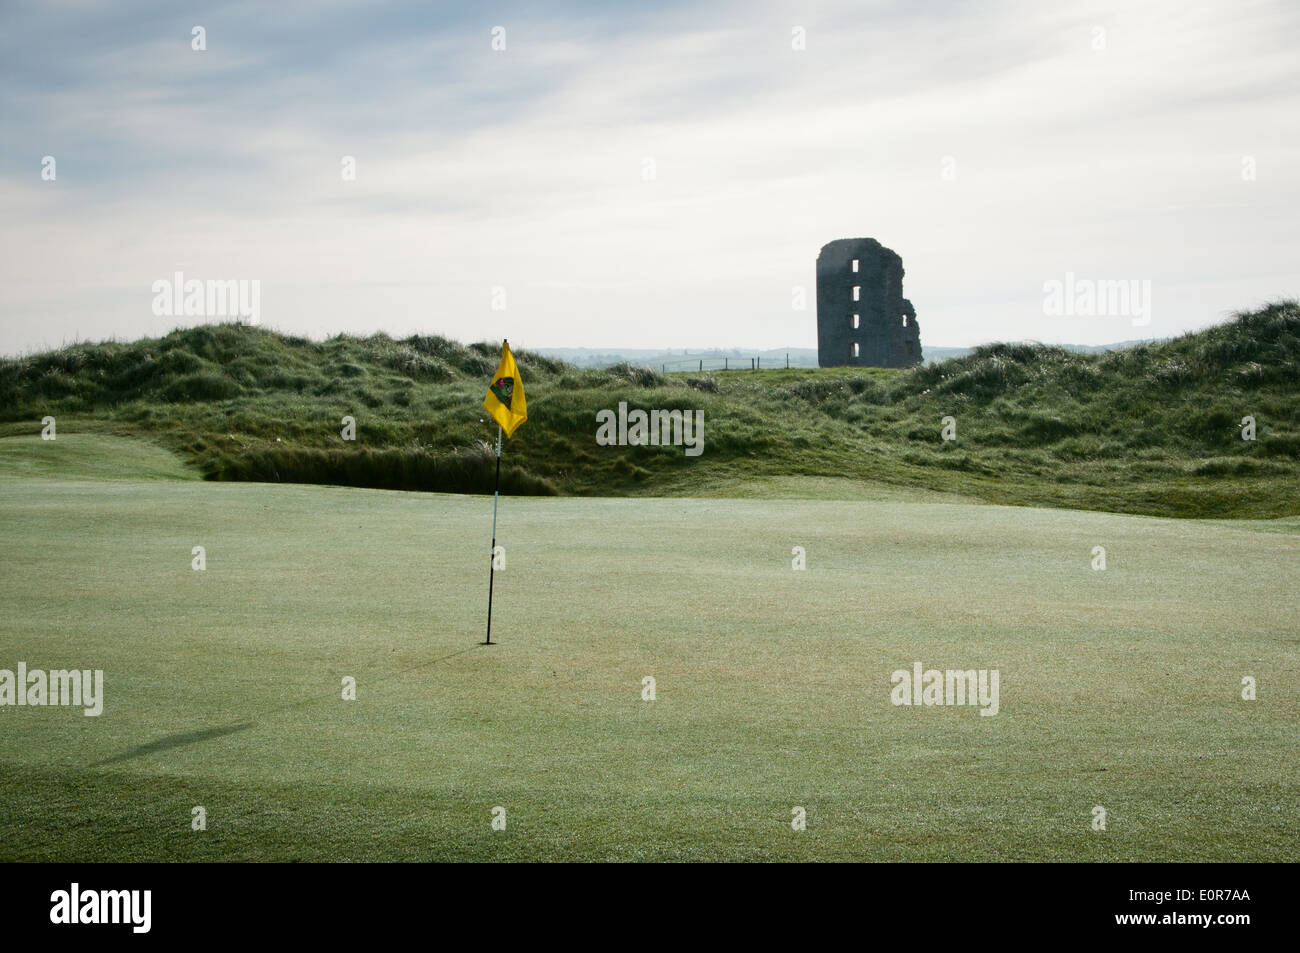 Putting Green with pin and castle in background - Stock Image